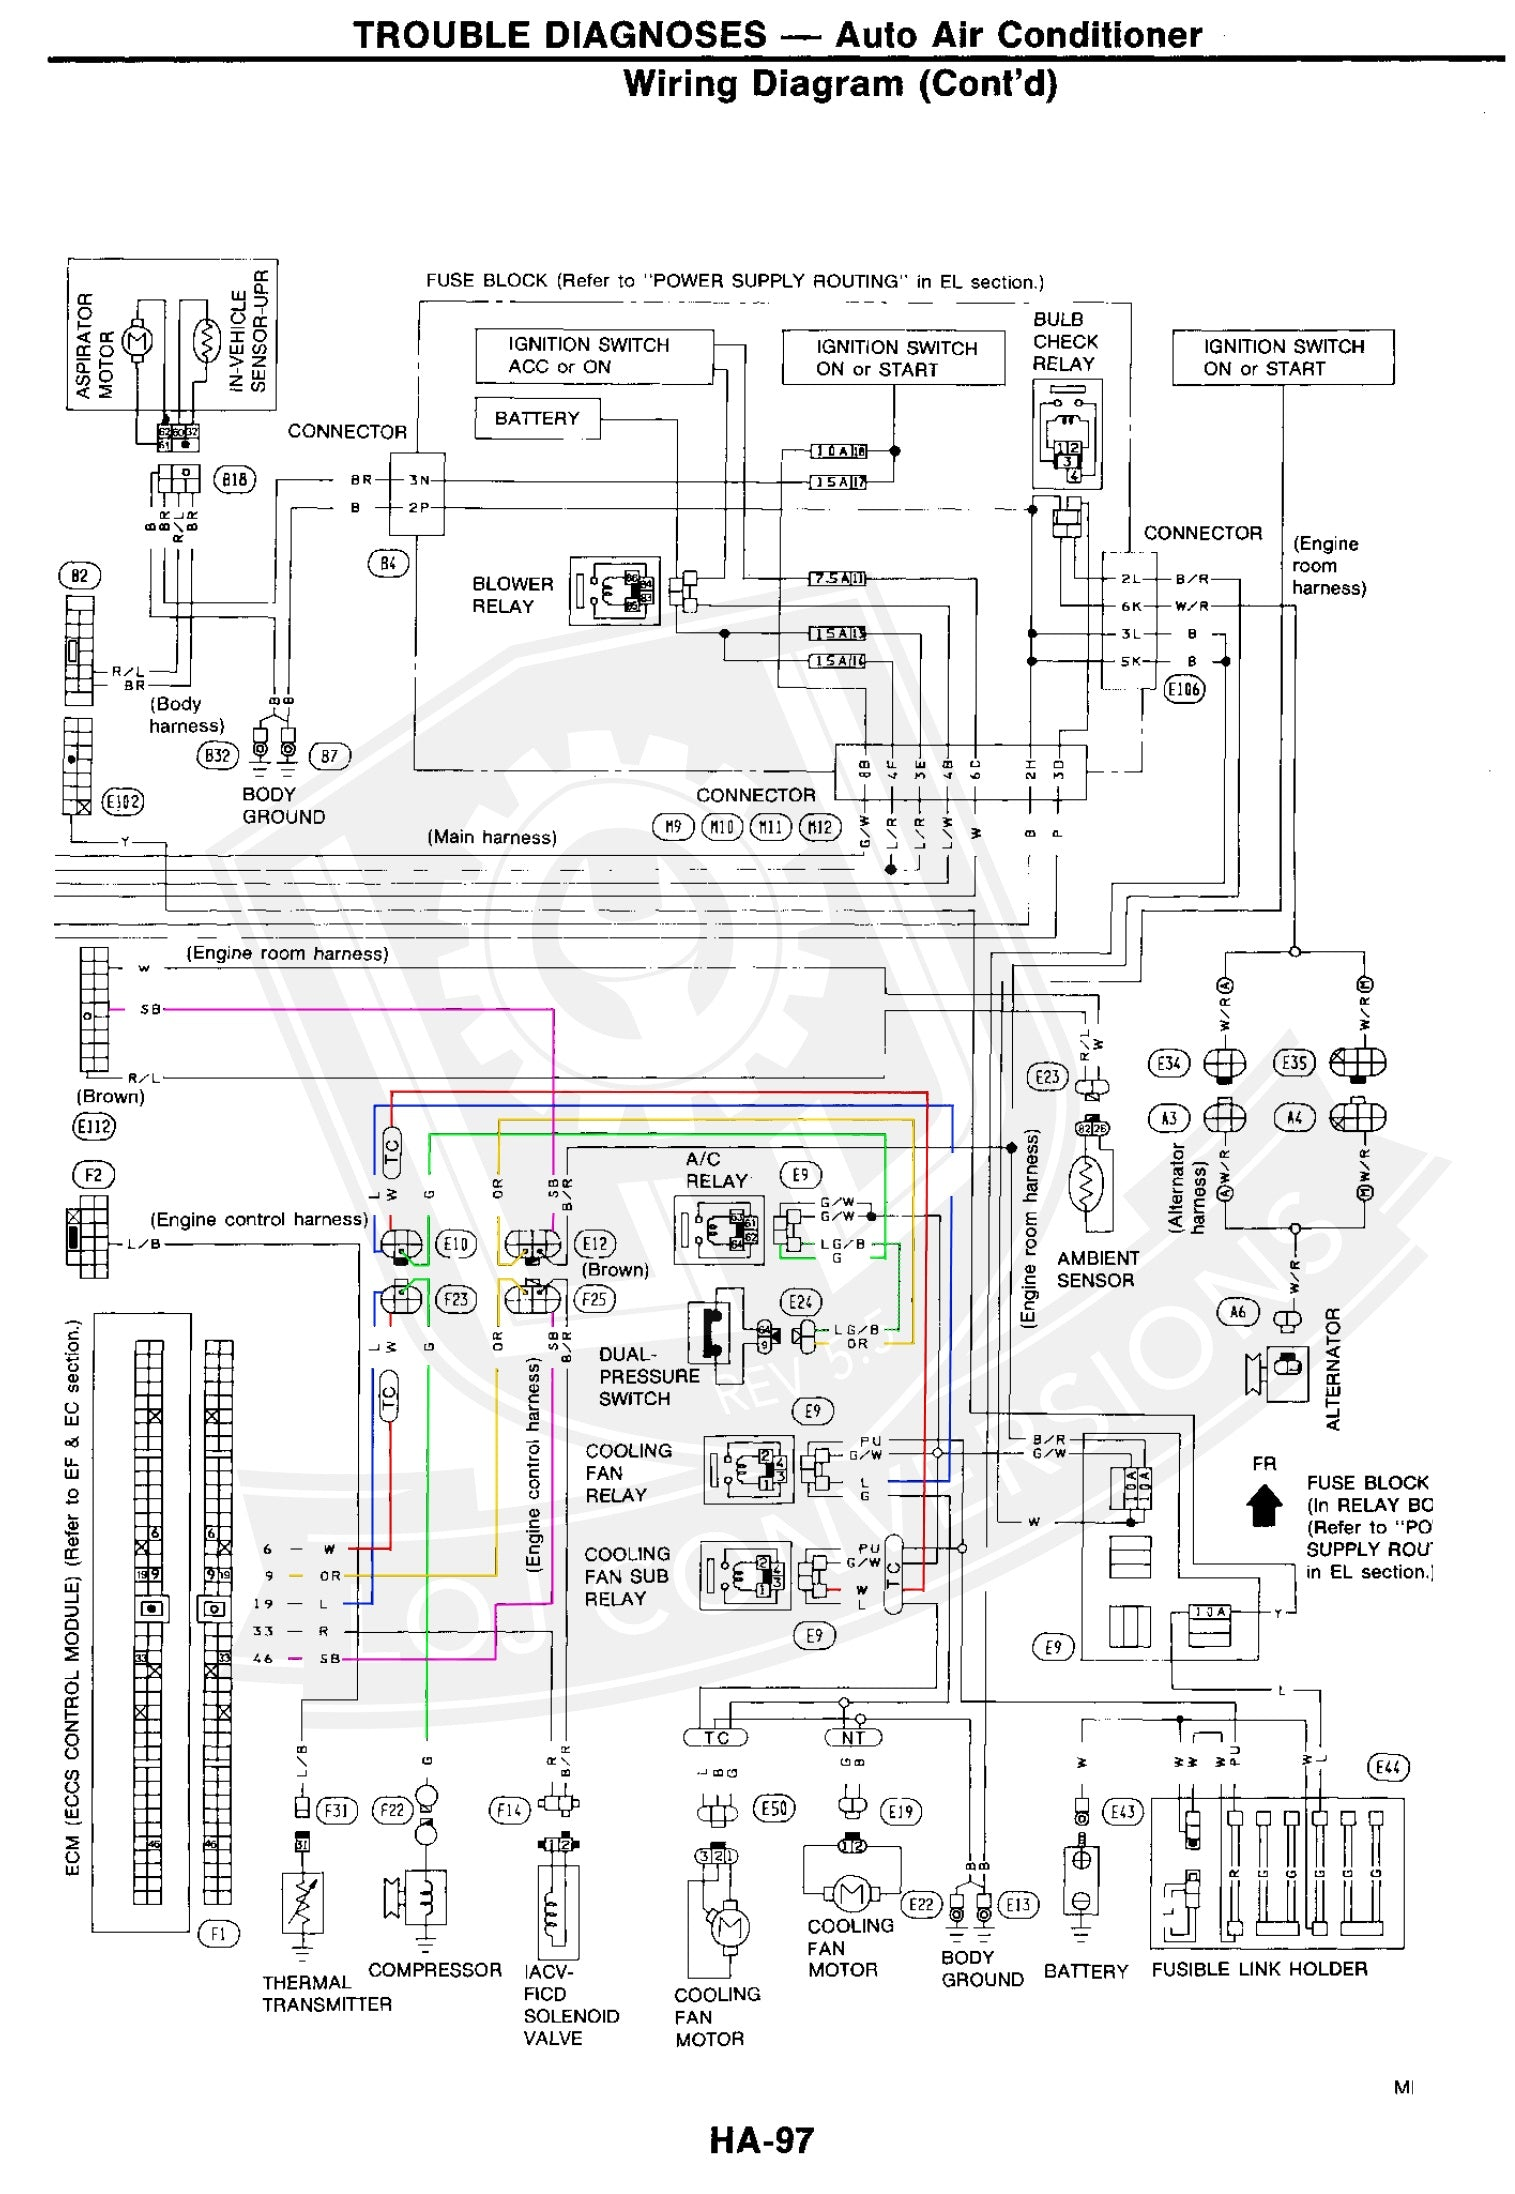 wiring the ac in a 300zx engine conversion loj conversions rh lojkits com 86 Nissan Wiring Diagram 95 Nissan Pickup Wiring Diagram